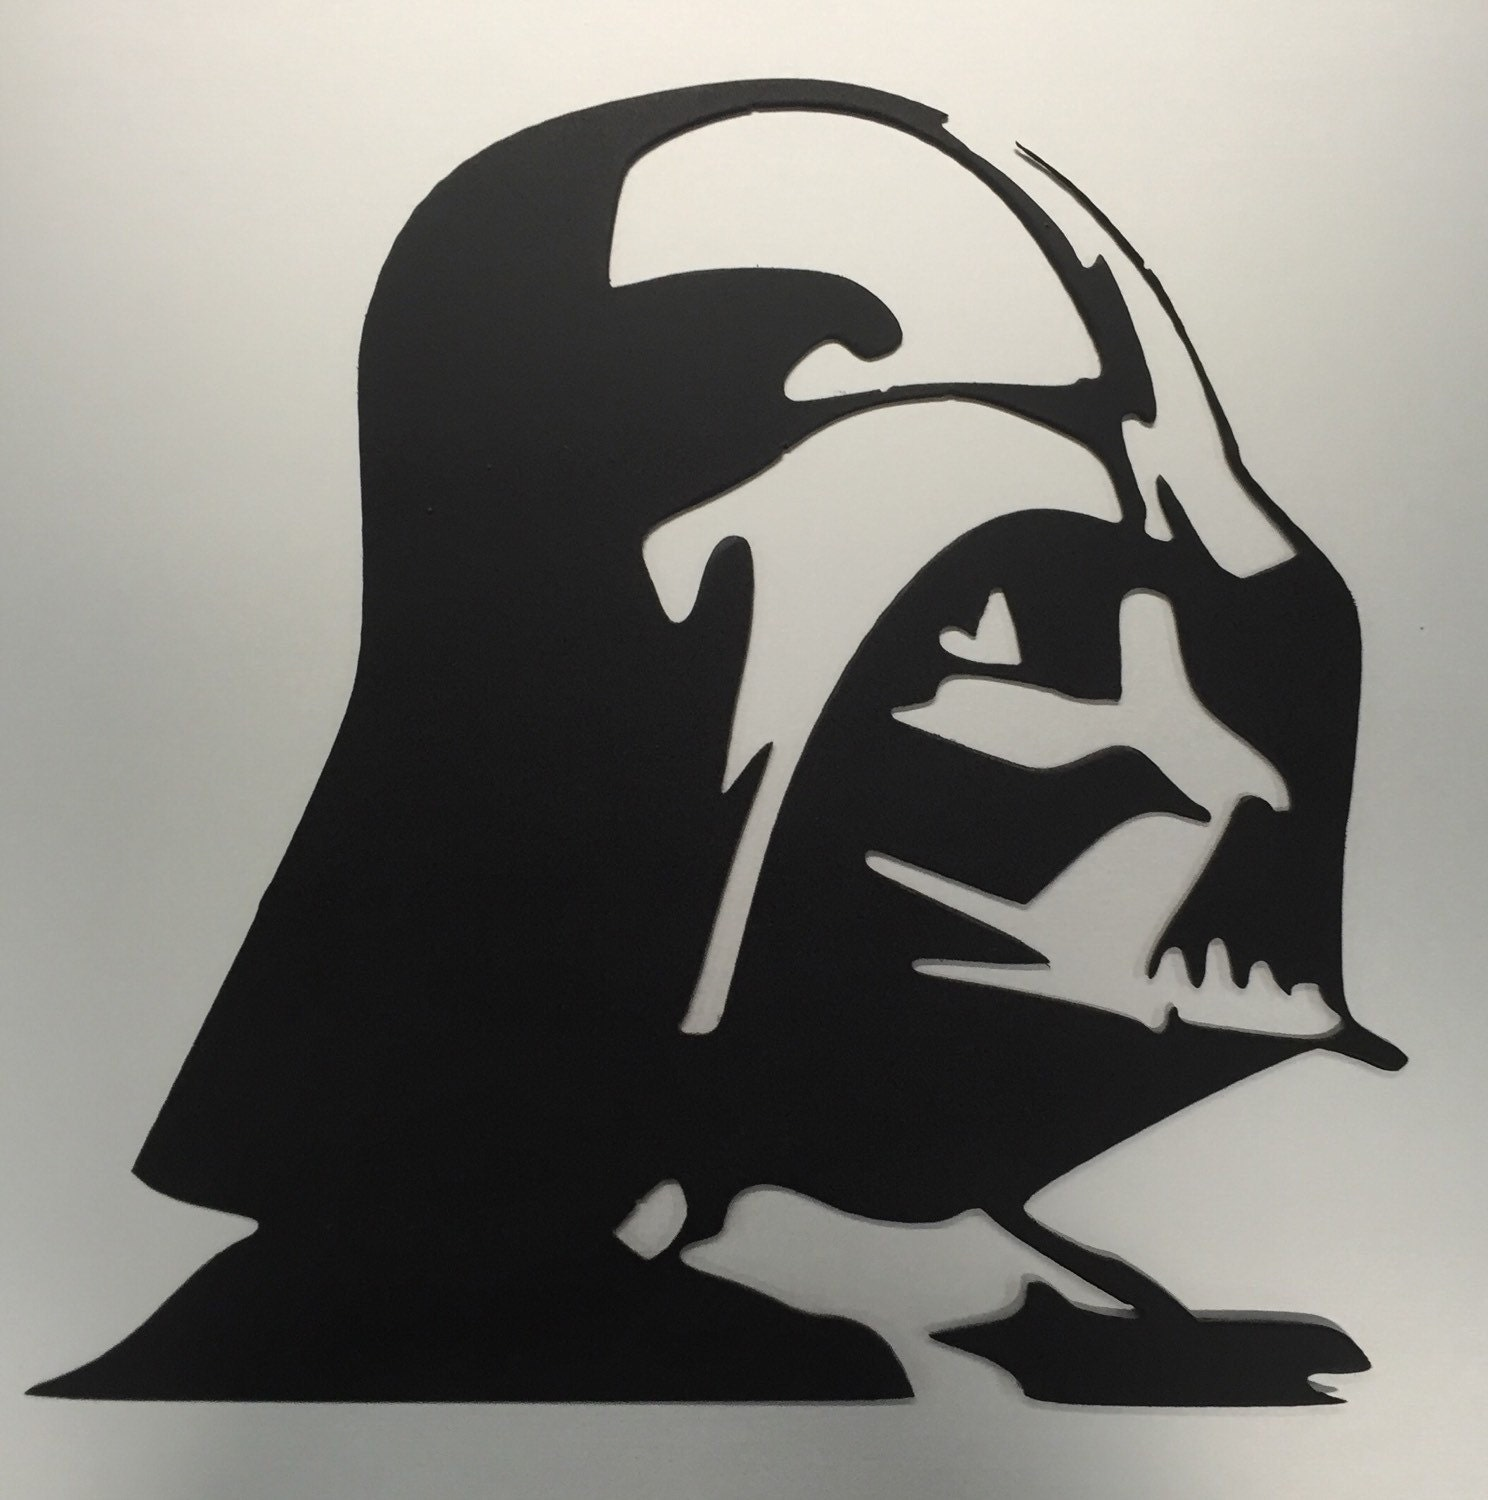 star wars metal wall art darth vader decor sign symbol